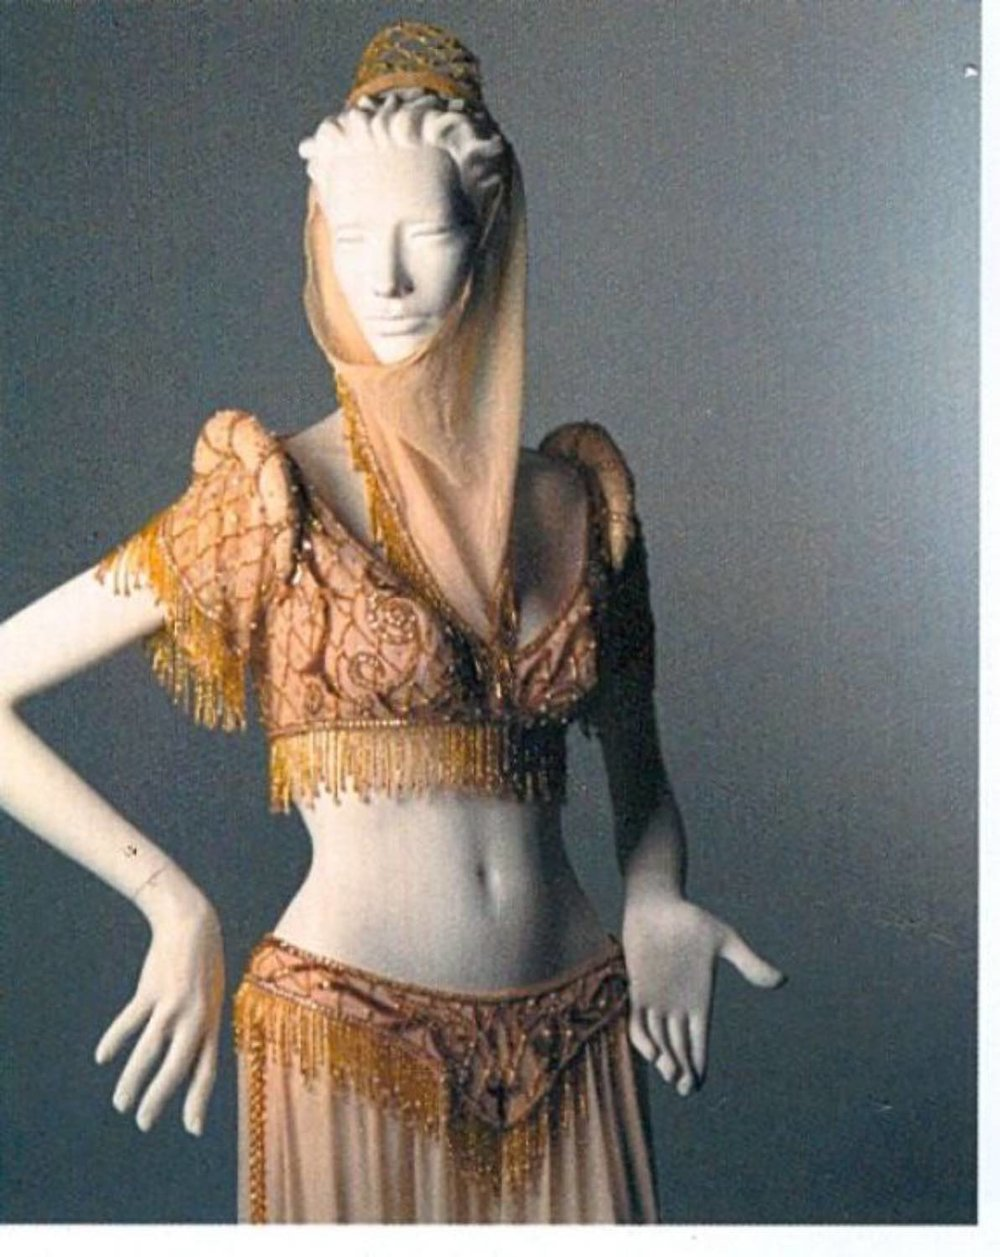 The Collection of Motion Picture Costume Design